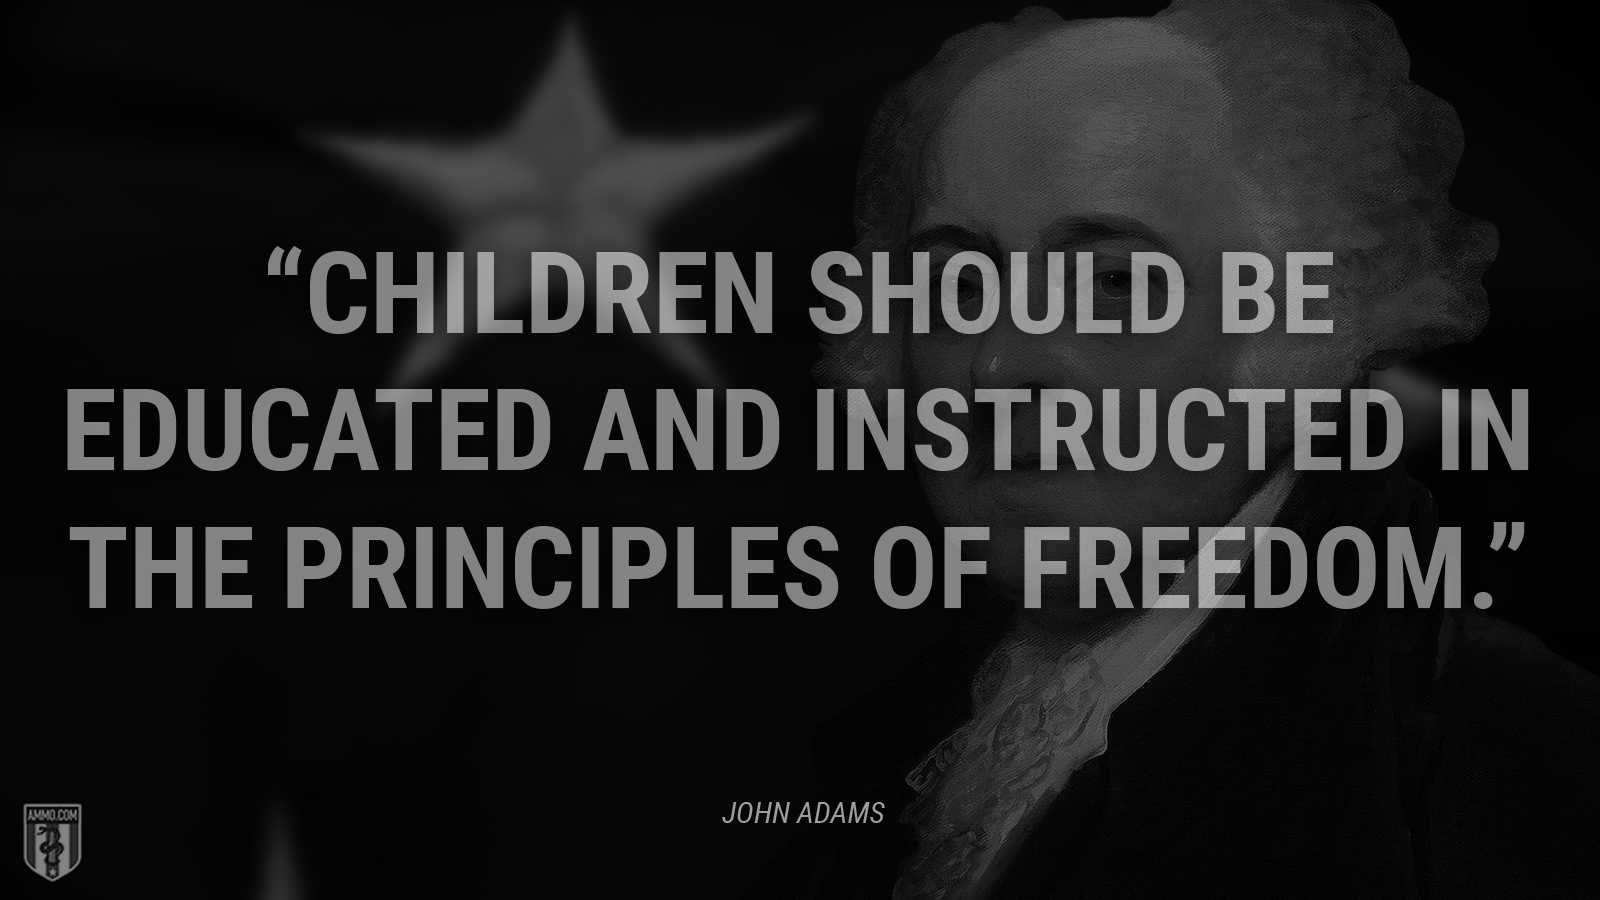 """Children should be educated and instructed in the principles of freedom."" - John Adams"